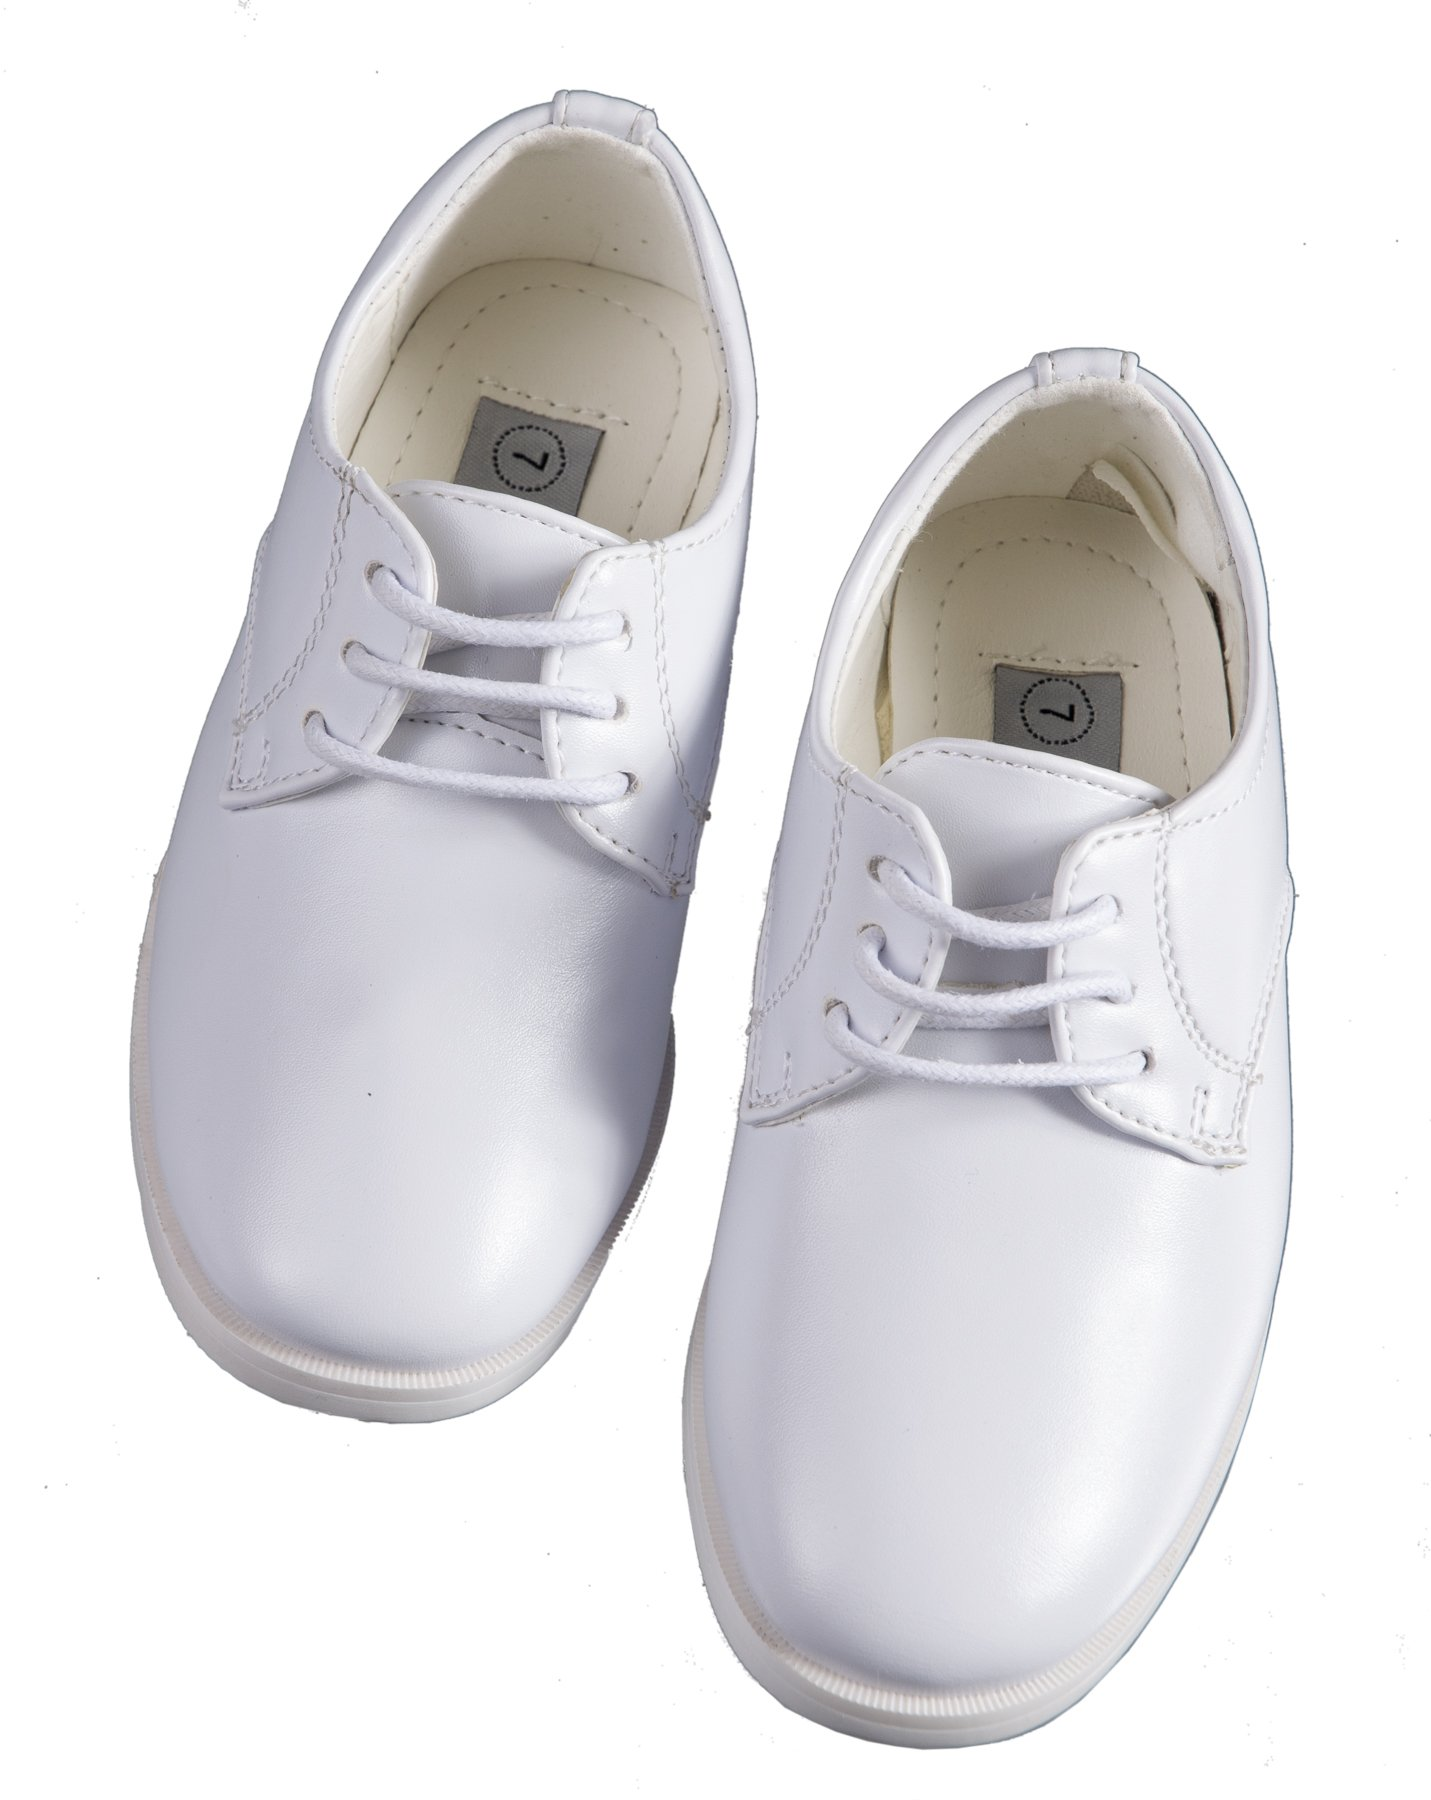 Boys White Lace Up Round Toe Dress Shoes - Wedding - First Communion (2 M US Little Kid)